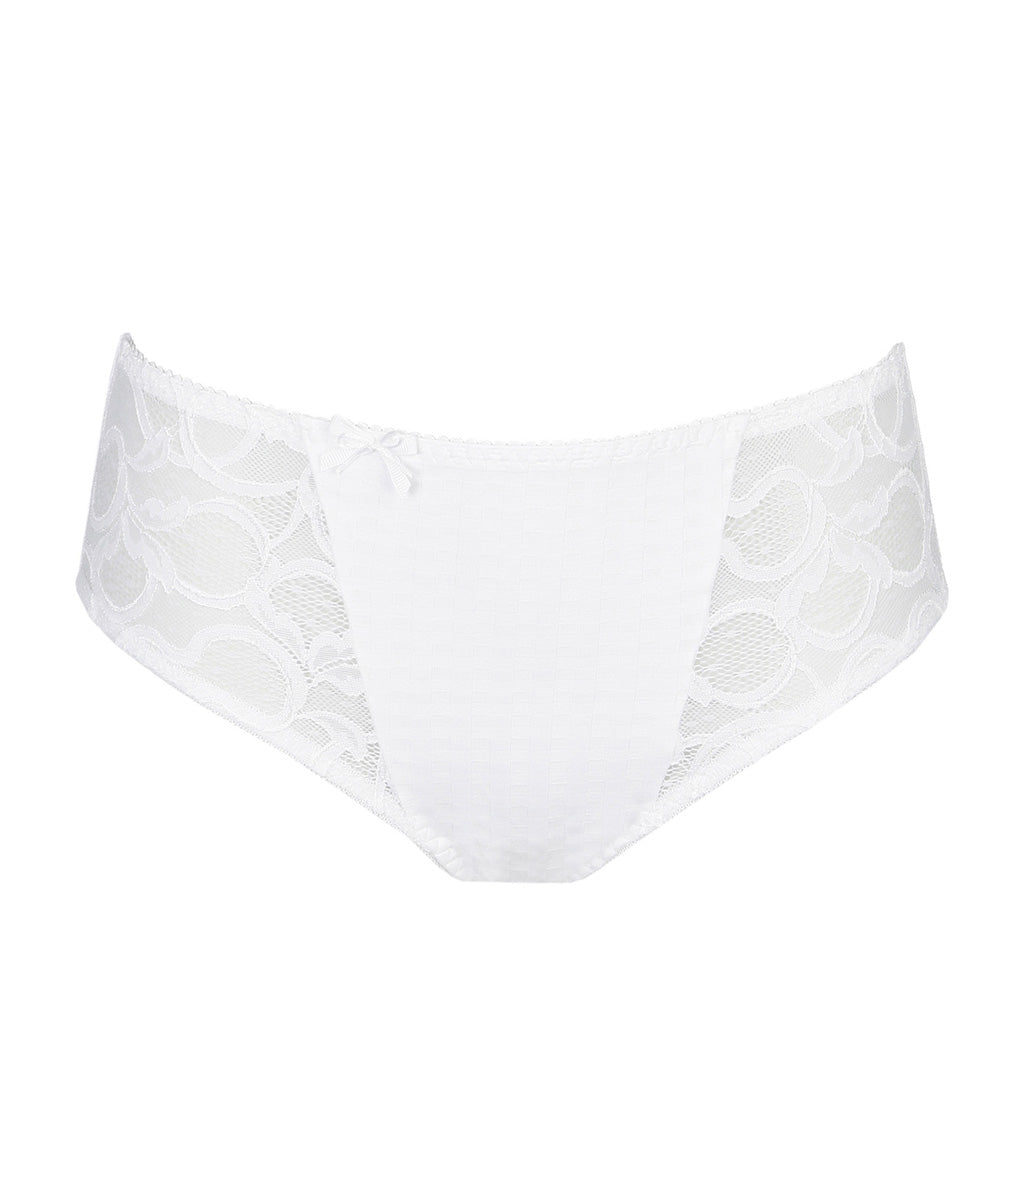 PrimaDonna 'Madison' (White) Full Brief - Sandra Dee - Product Shot - Front